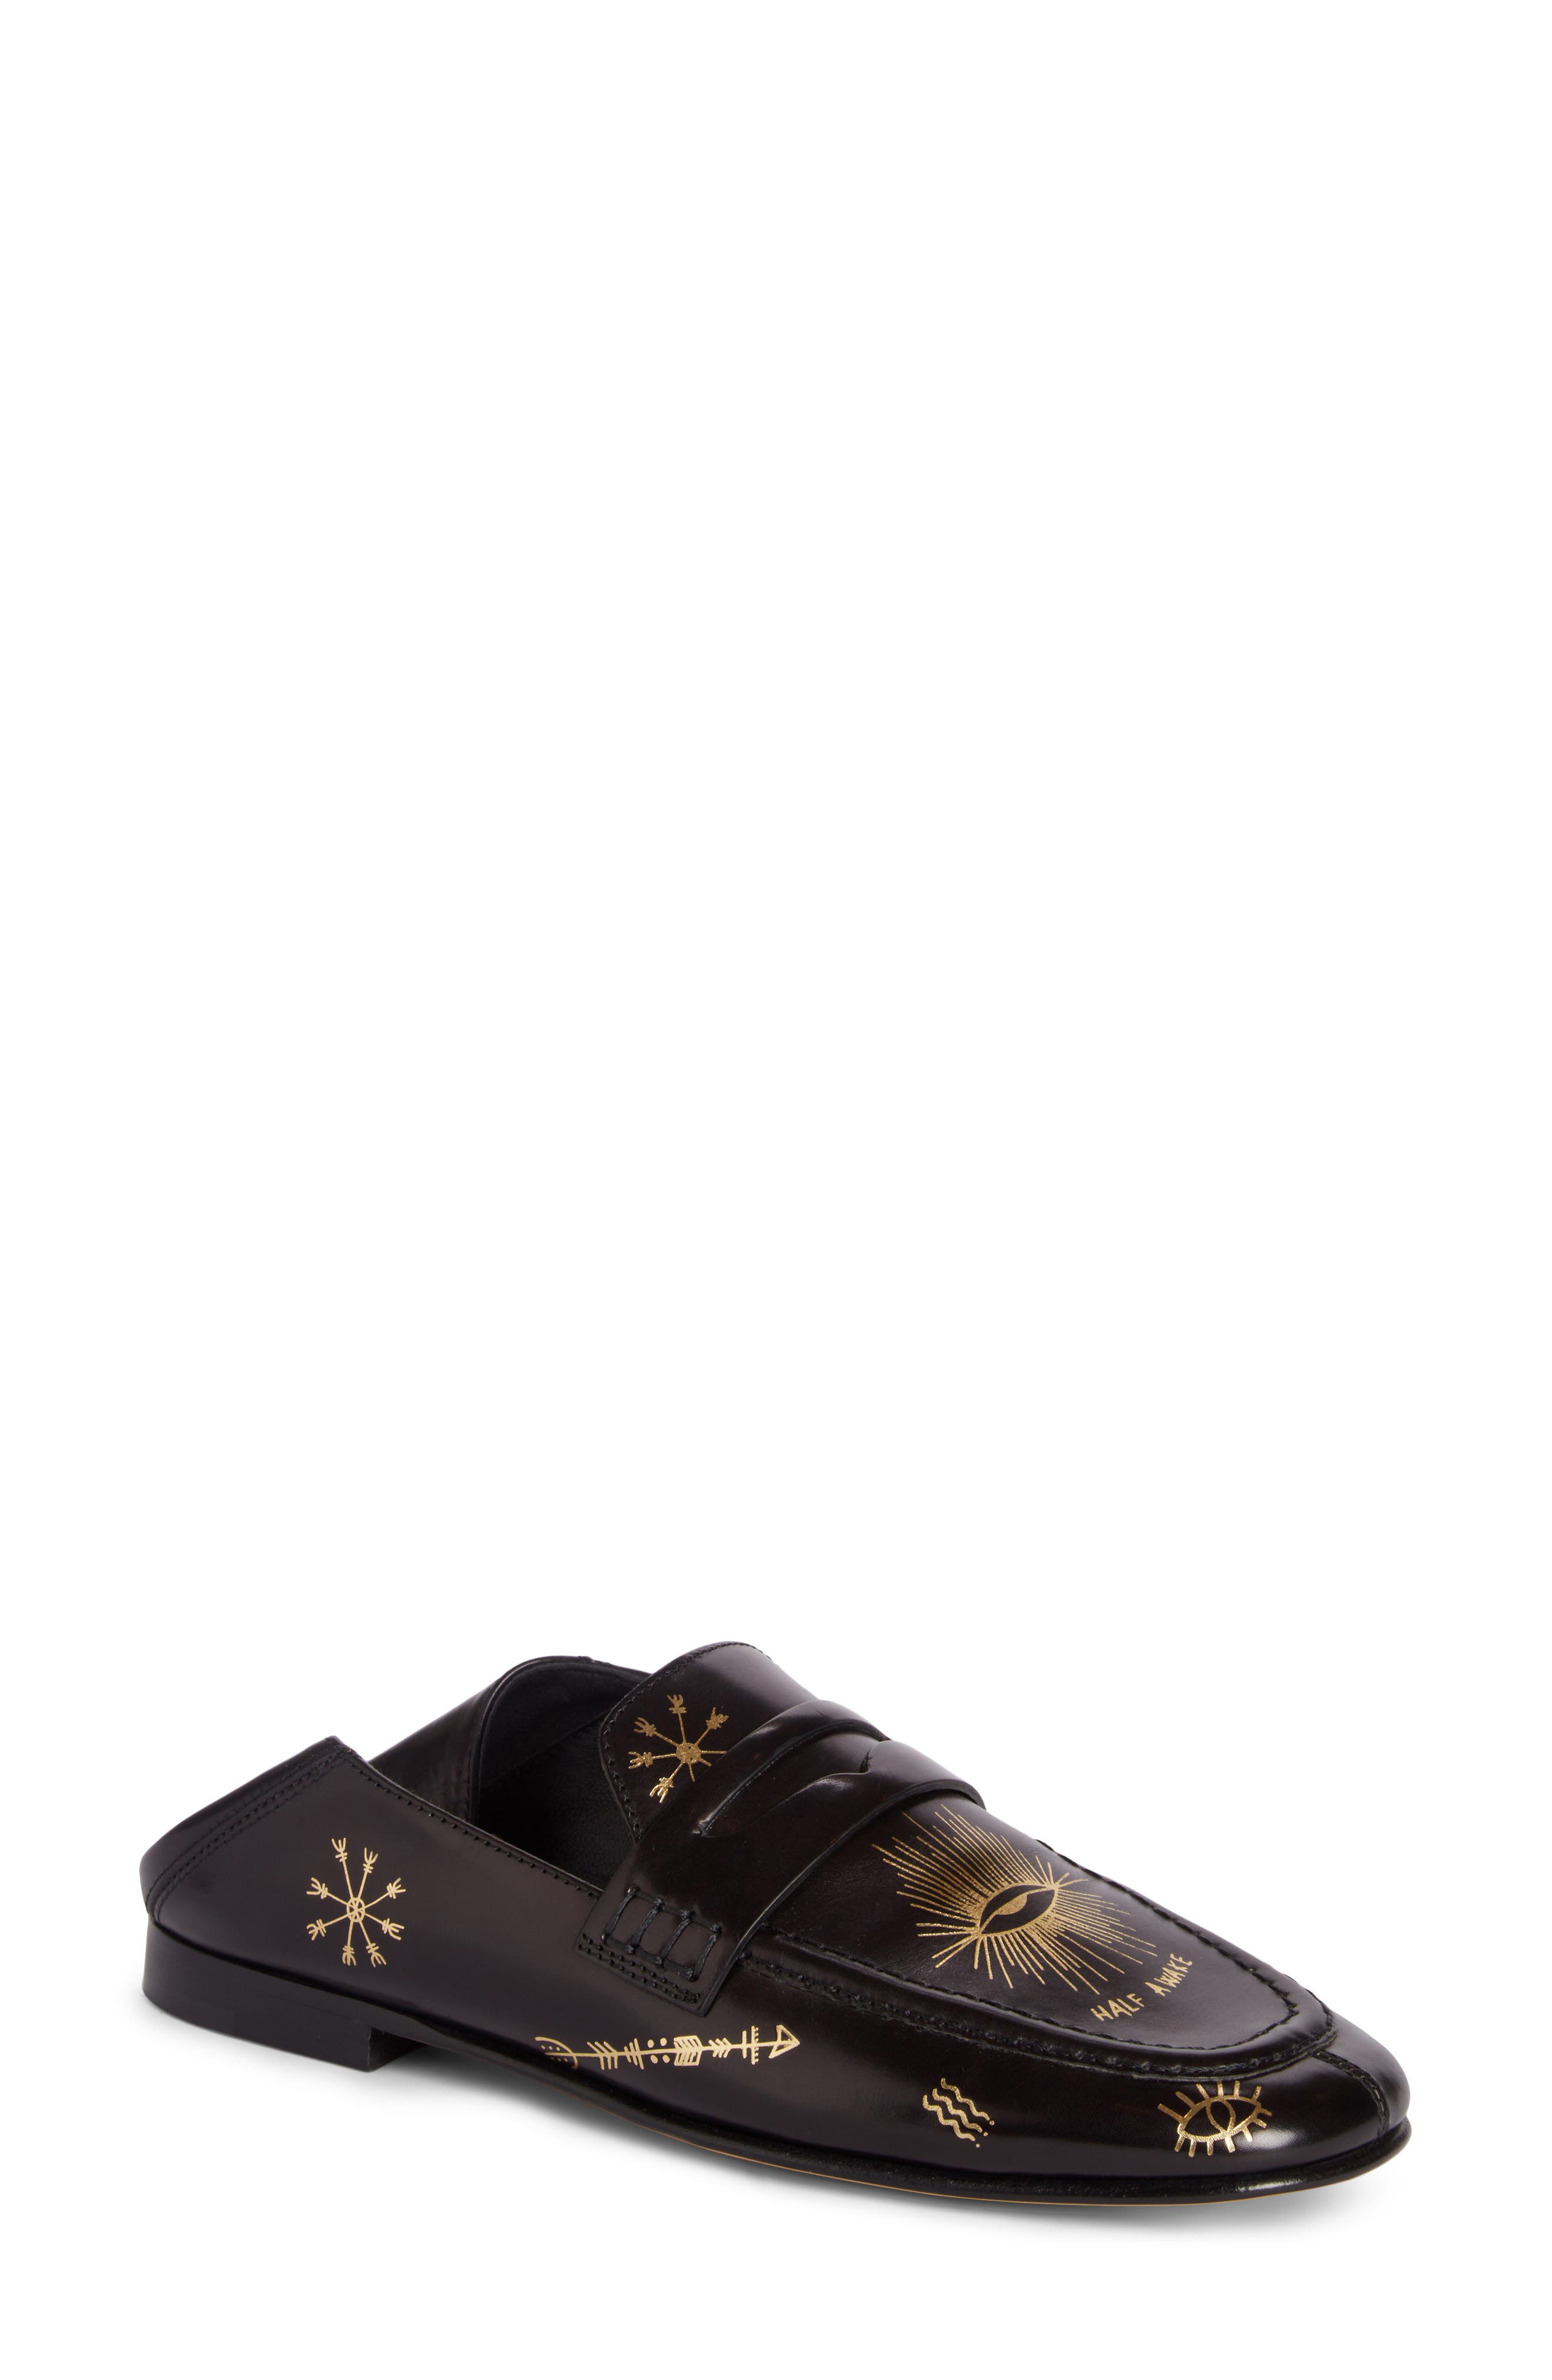 Fezzy Print Convertible Loafer,                             Main thumbnail 1, color,